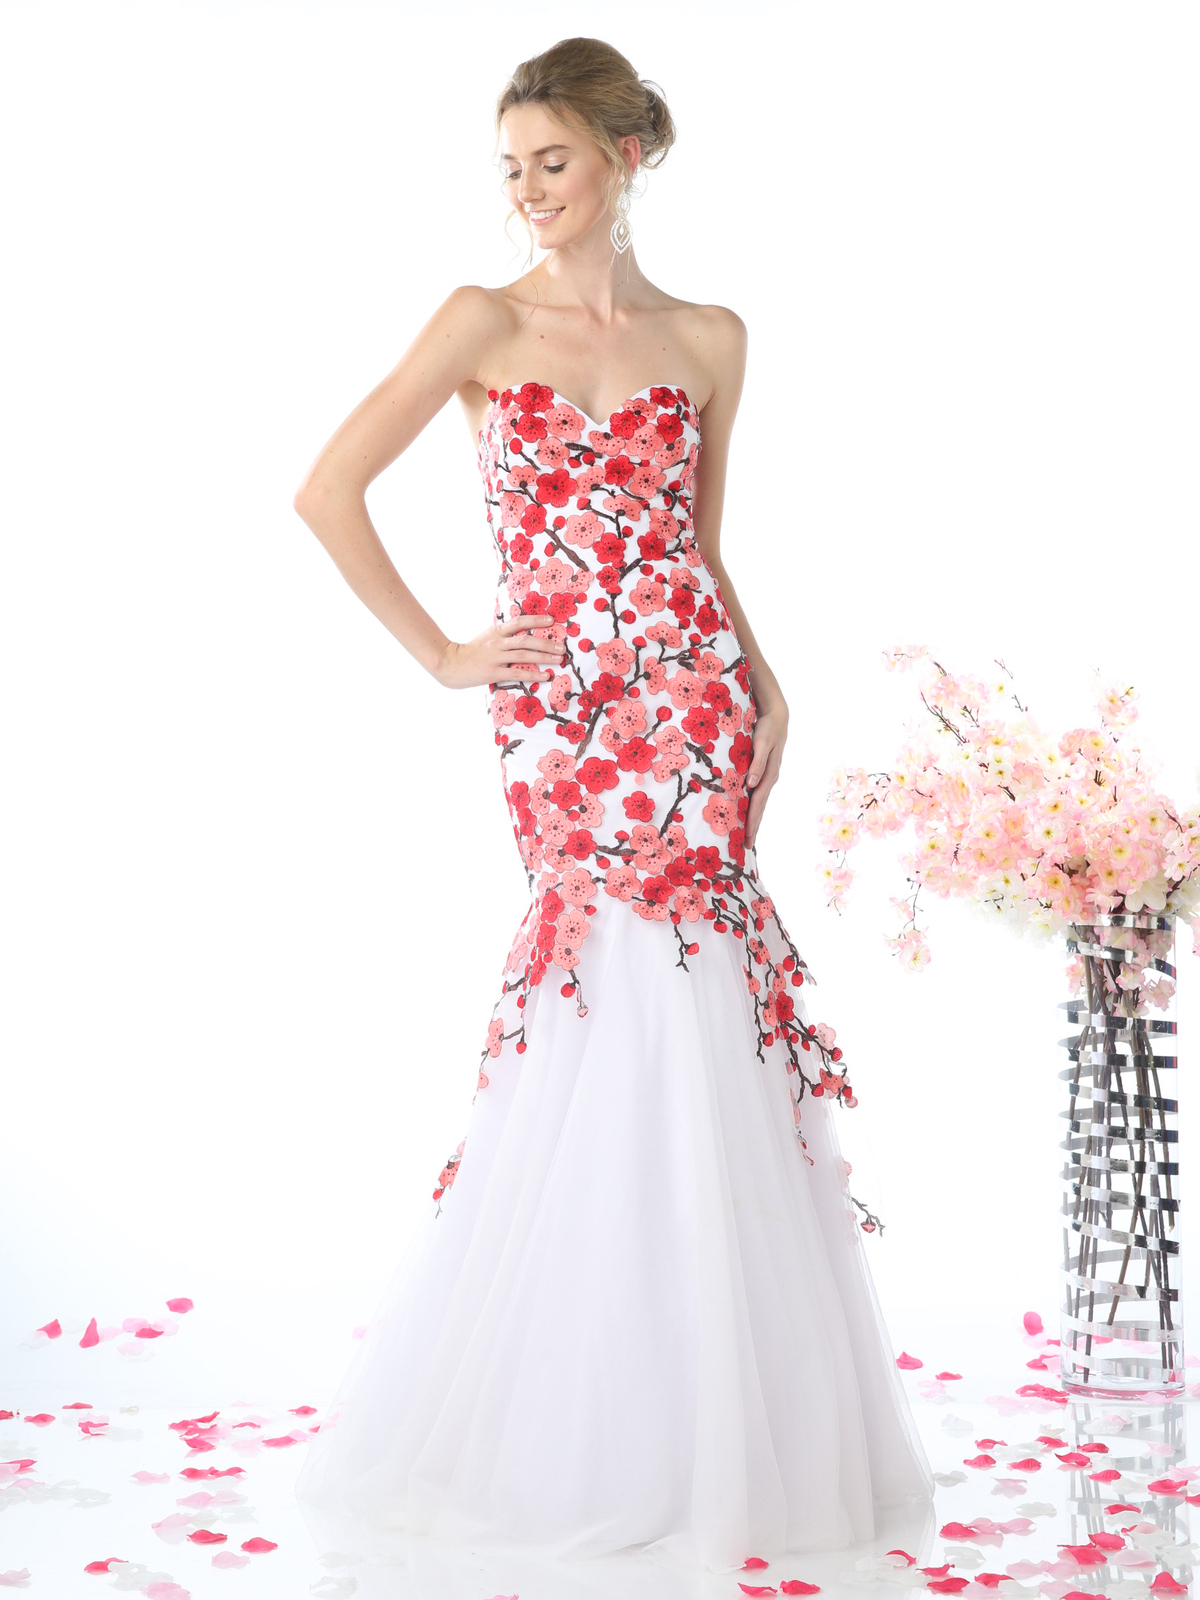 Prom Dresses Shops In Los Angeles - Boutique Prom Dresses